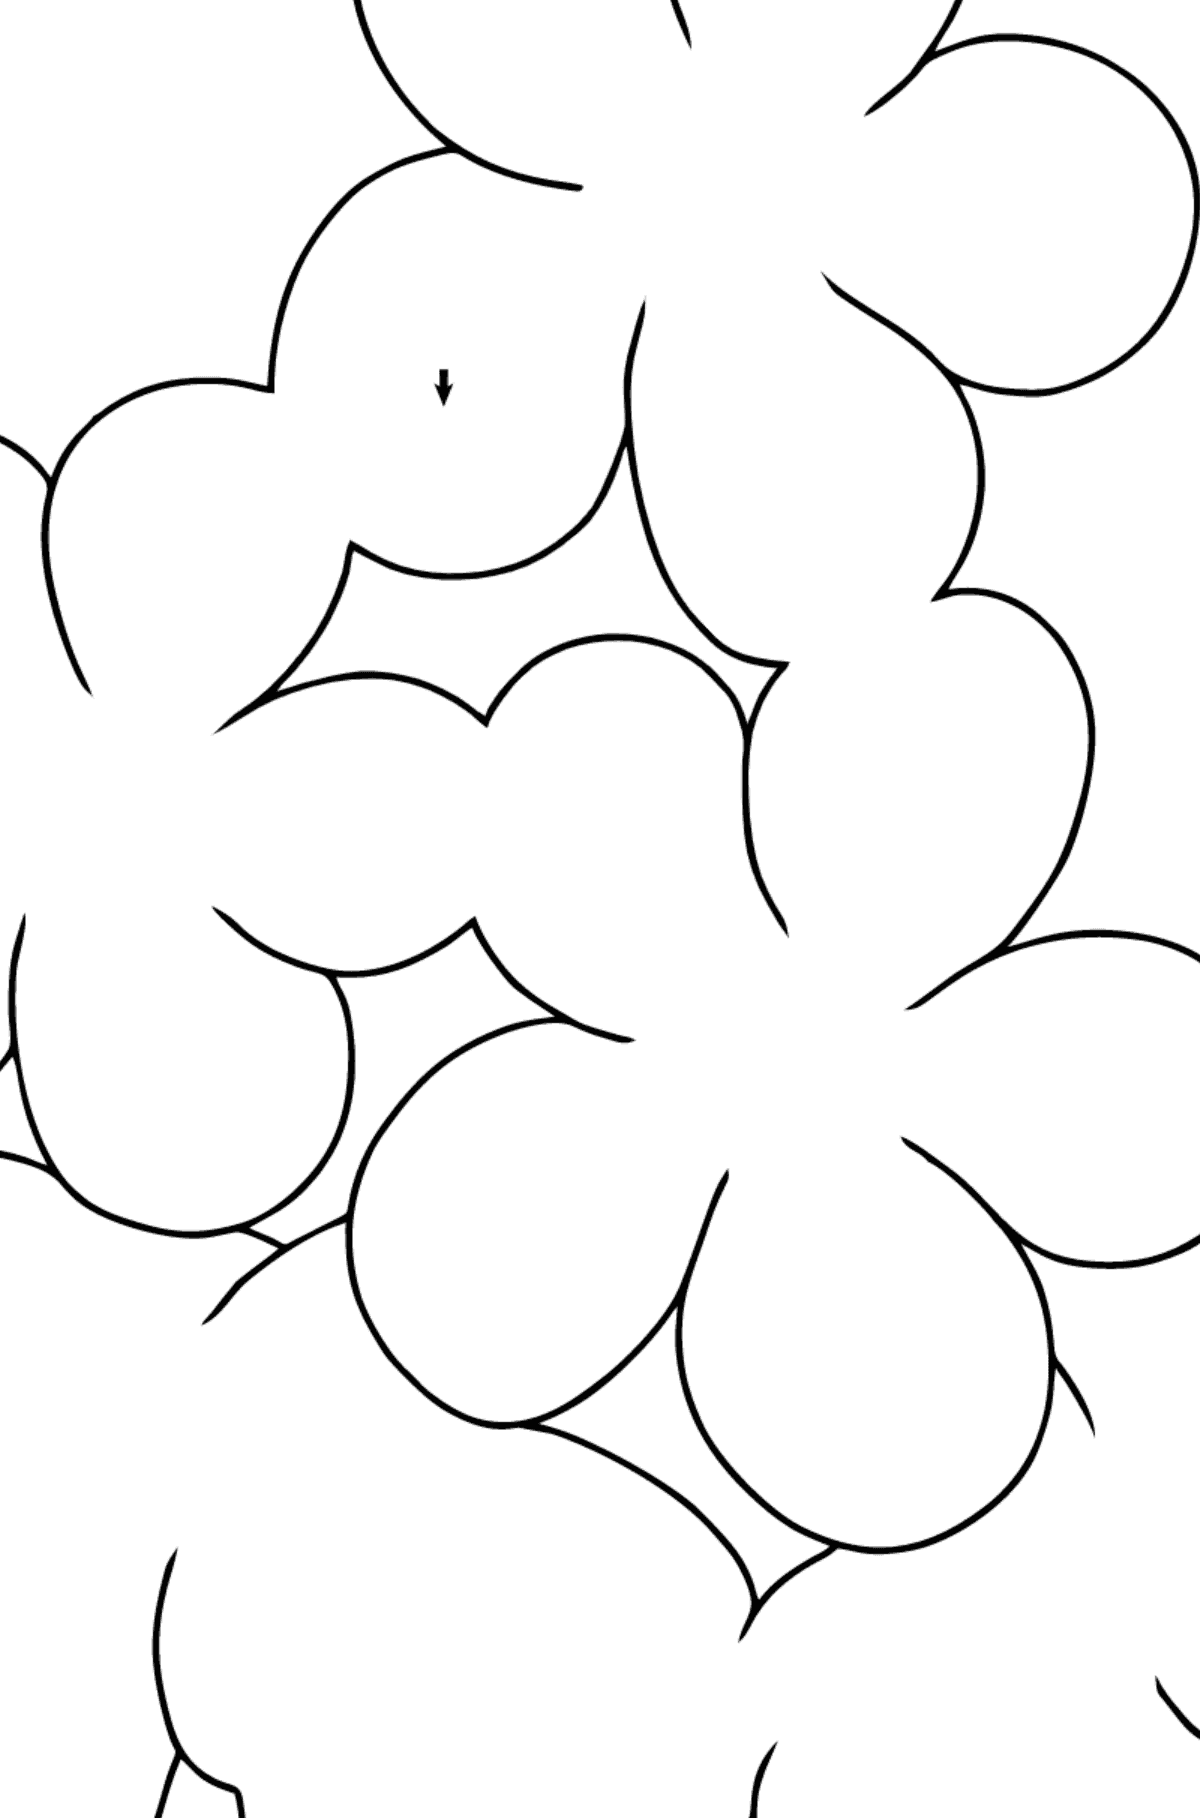 Coloring Page - Spring and First Flowers for Children  - Color by Symbols and Geometric Shapes